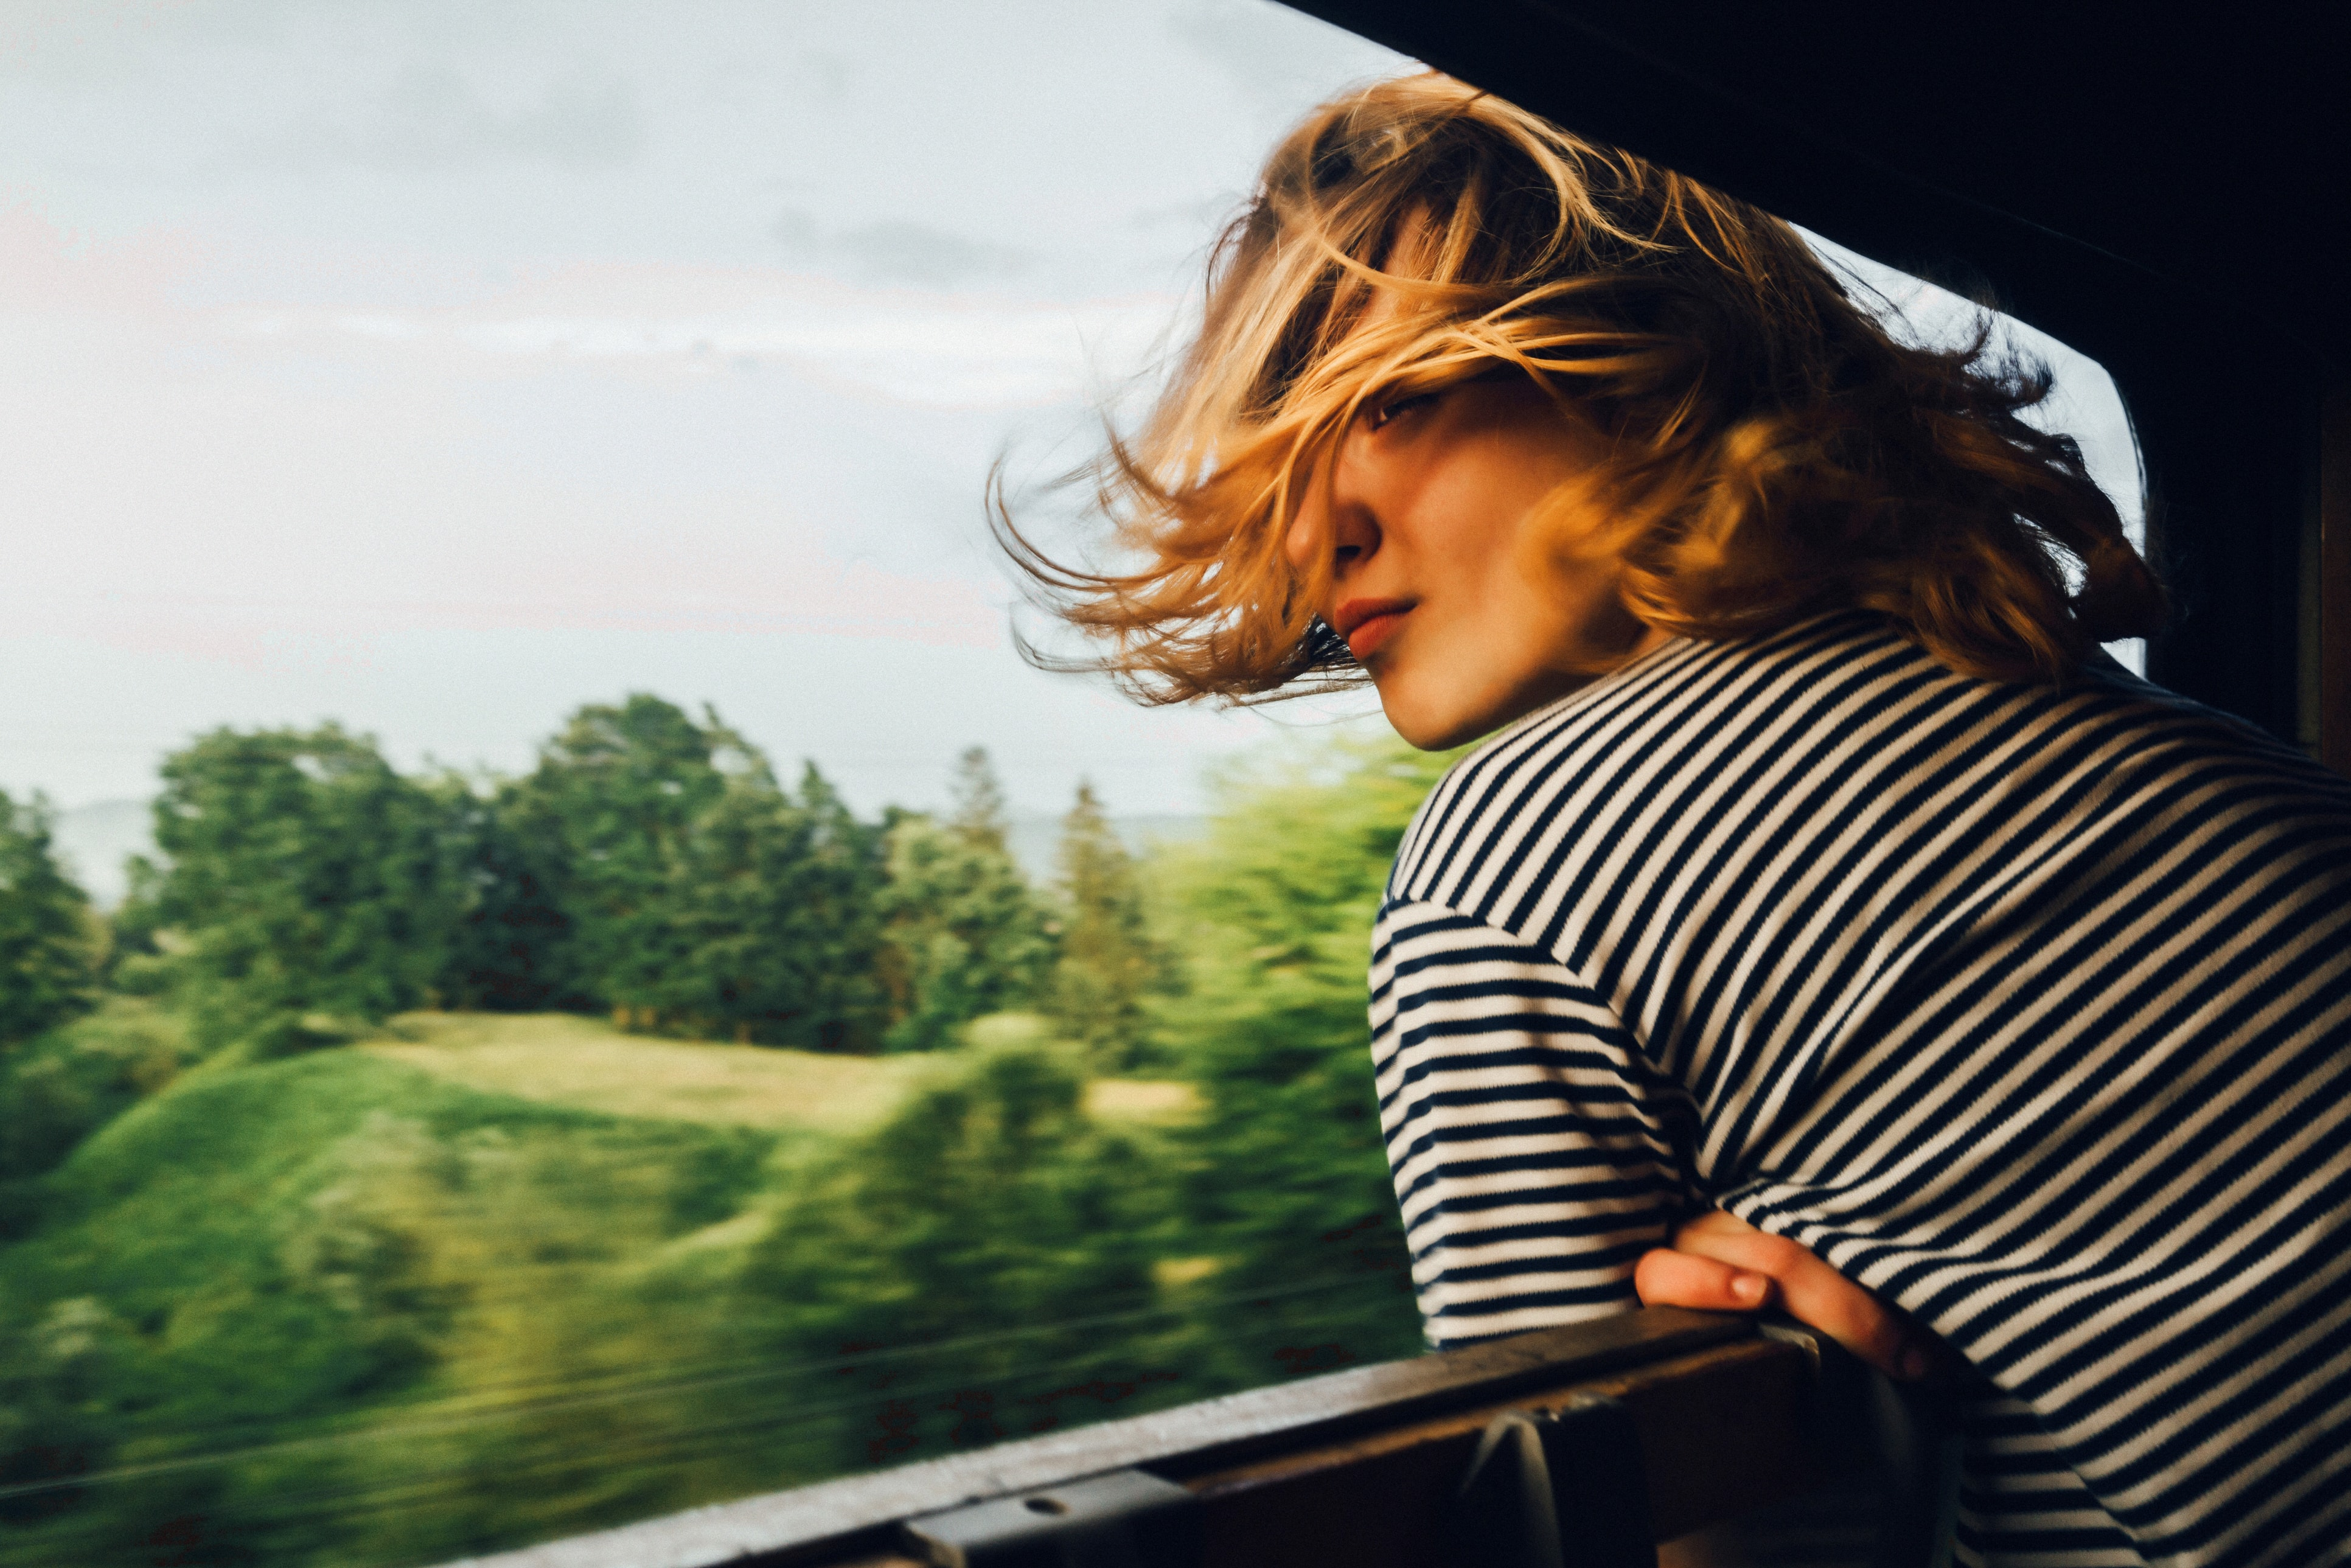 Image of a girl looking out of a fast-moving train with a blurry background